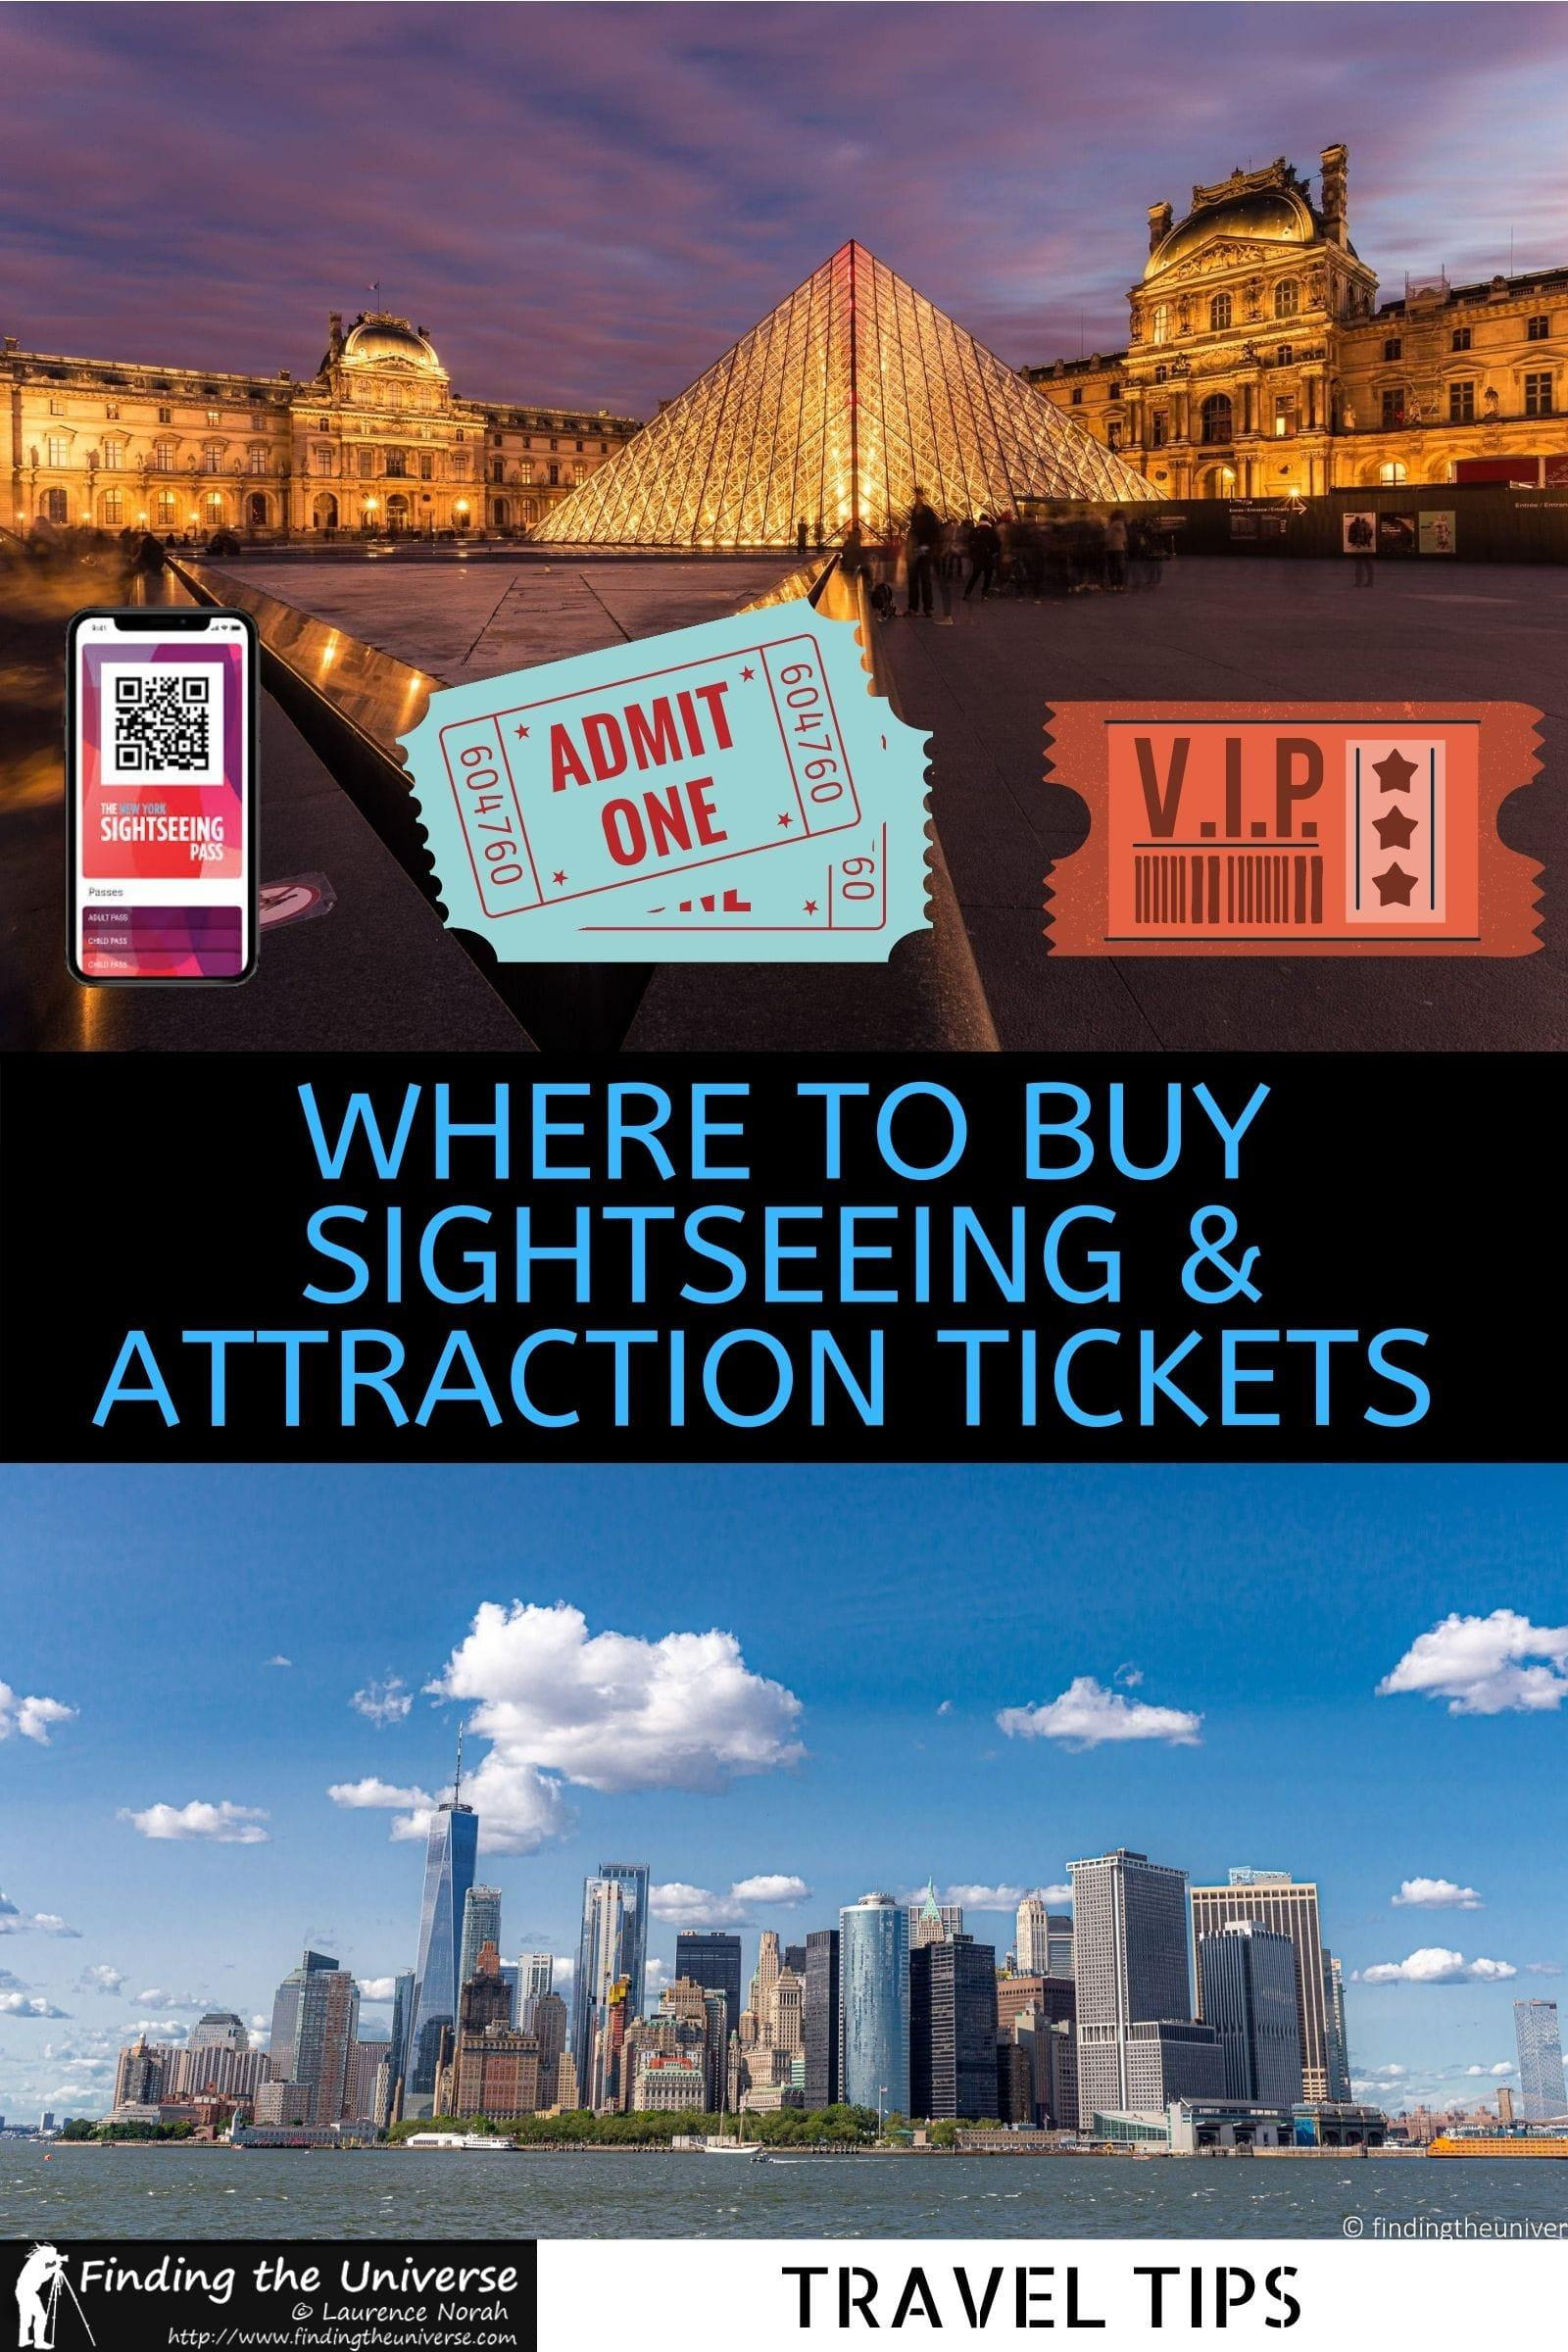 Where to Buy Sightseeing & Attraction Tickets Online